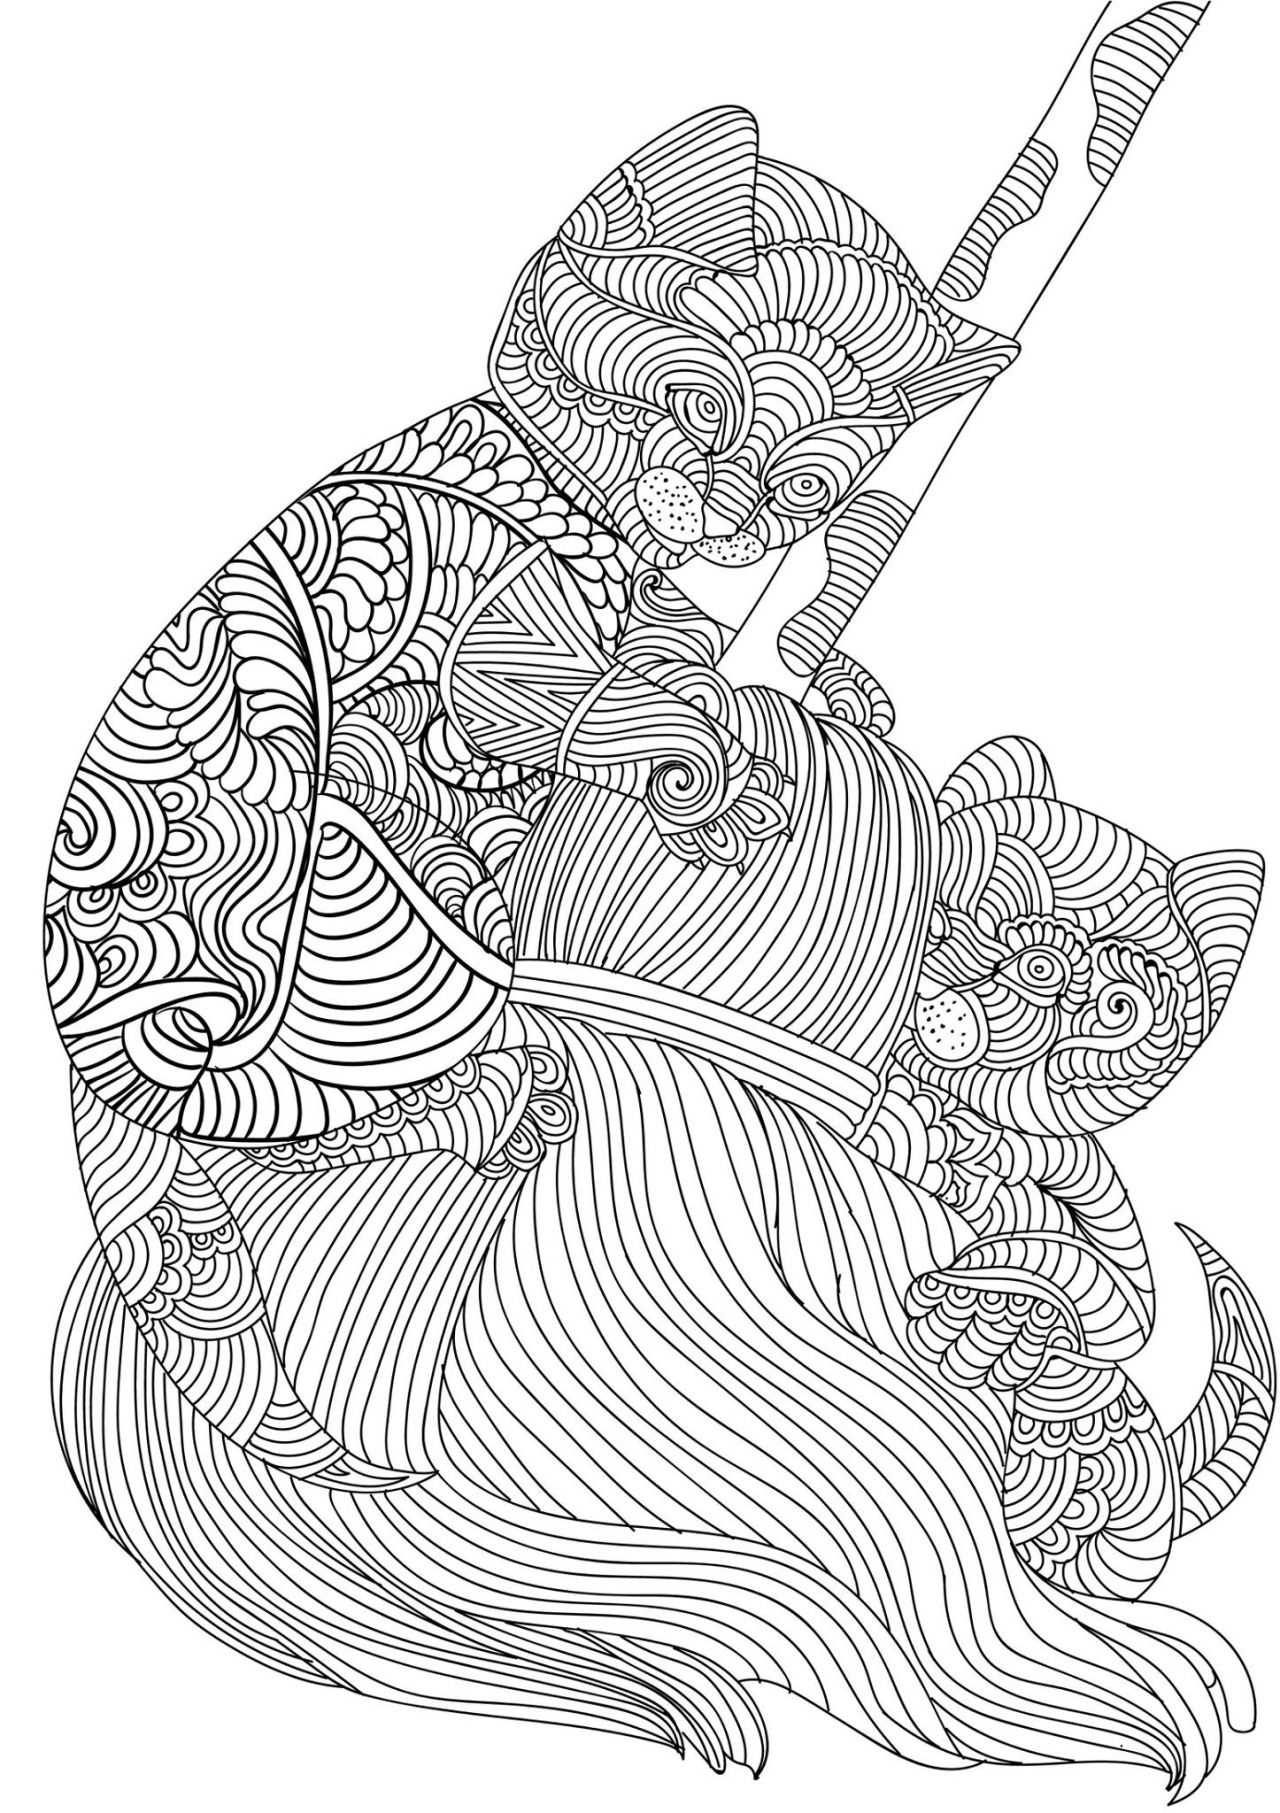 Detailed Kittens Playing Adult Coloring Pages